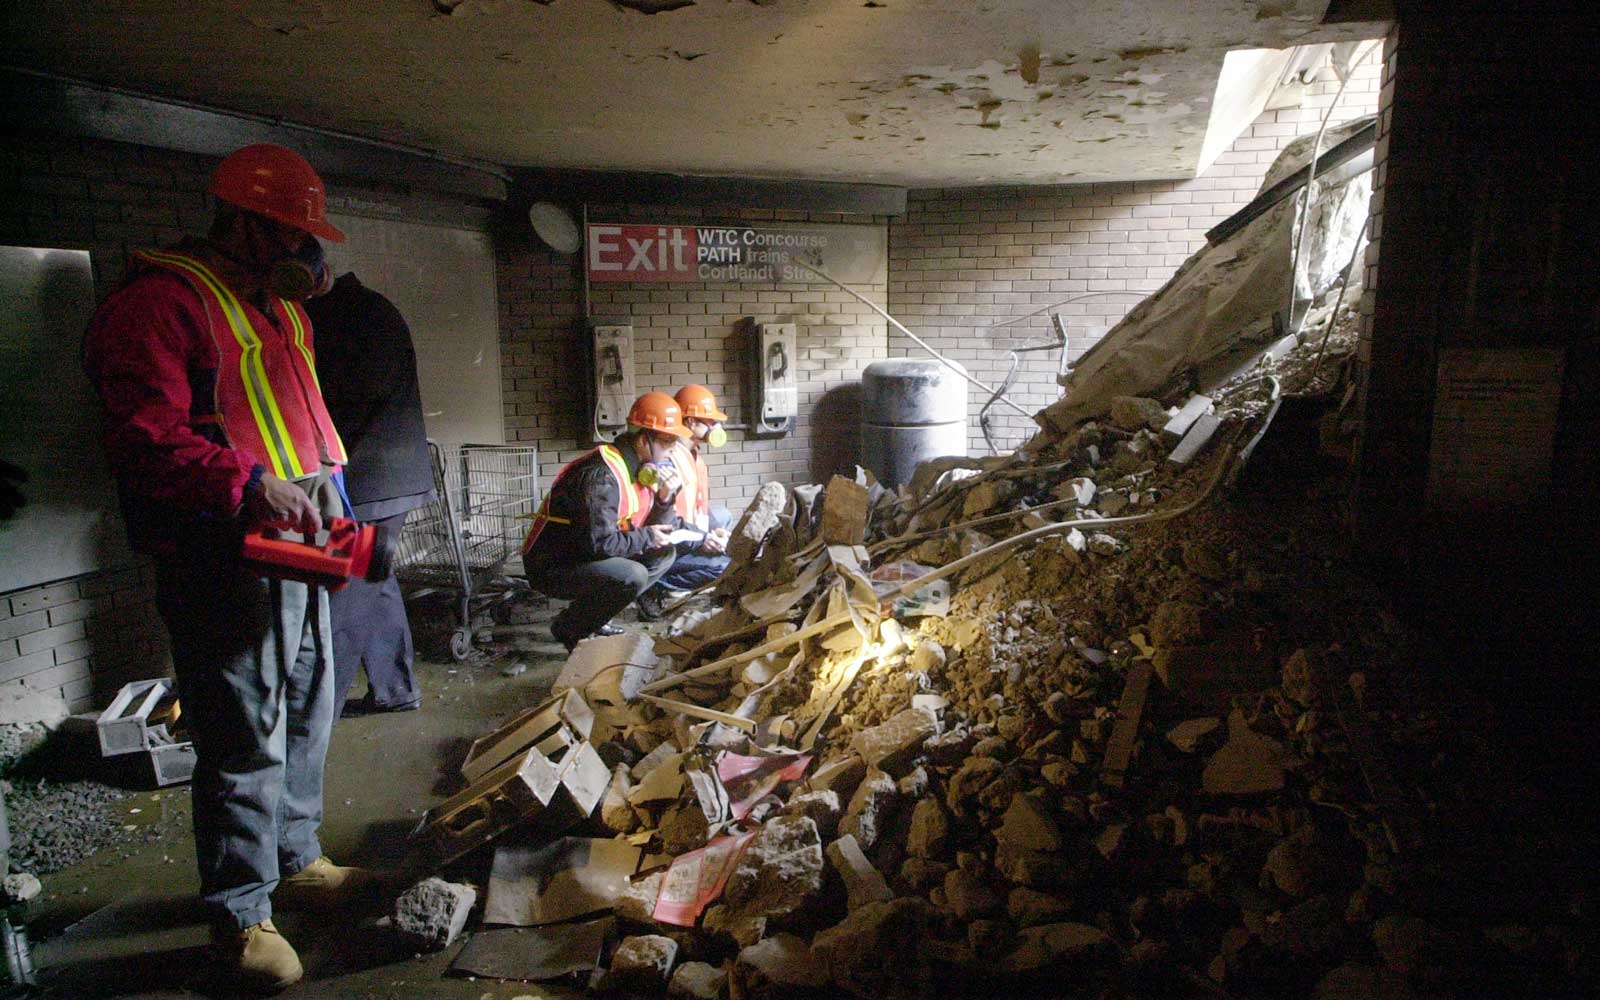 Workers look over the mass of rubble that used to be the staircase leading down to the Cortlandt St. station which was destroyed after the No. 1 and 9 subway lines collapsed under the demolished World Trade Center.